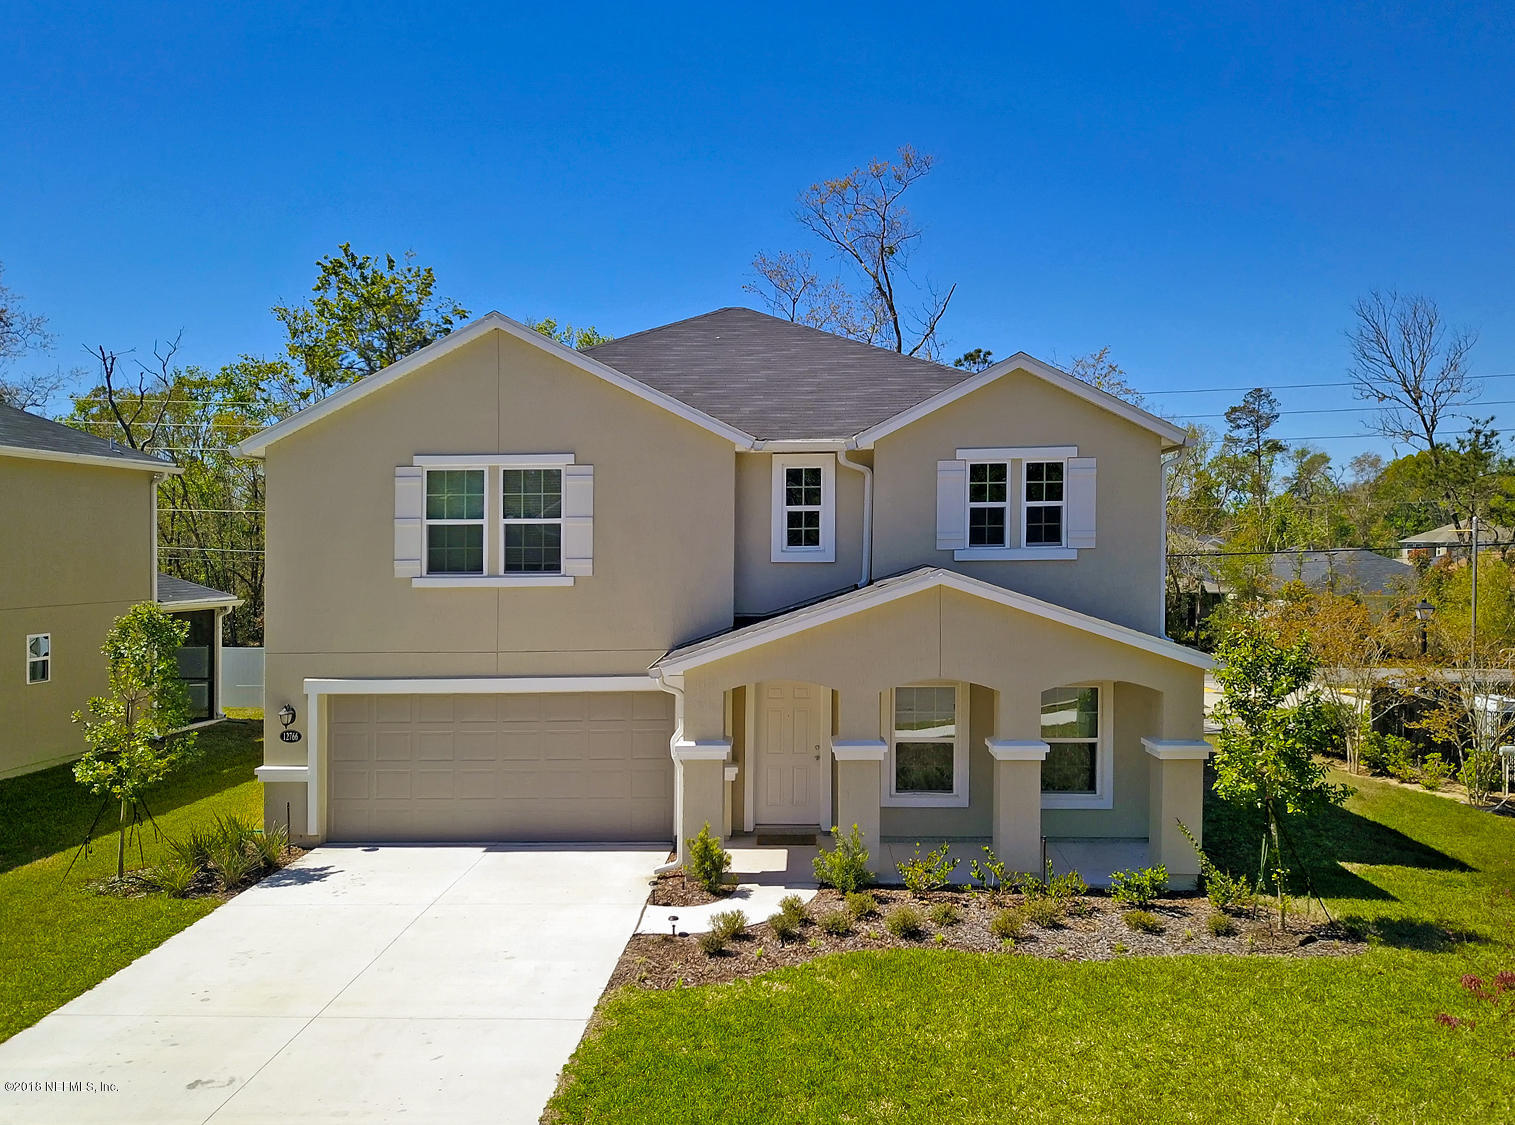 12766 CHANDLERS CROSSING, JACKSONVILLE, FLORIDA 32226, 4 Bedrooms Bedrooms, ,2 BathroomsBathrooms,Residential - single family,For sale,CHANDLERS CROSSING,926572